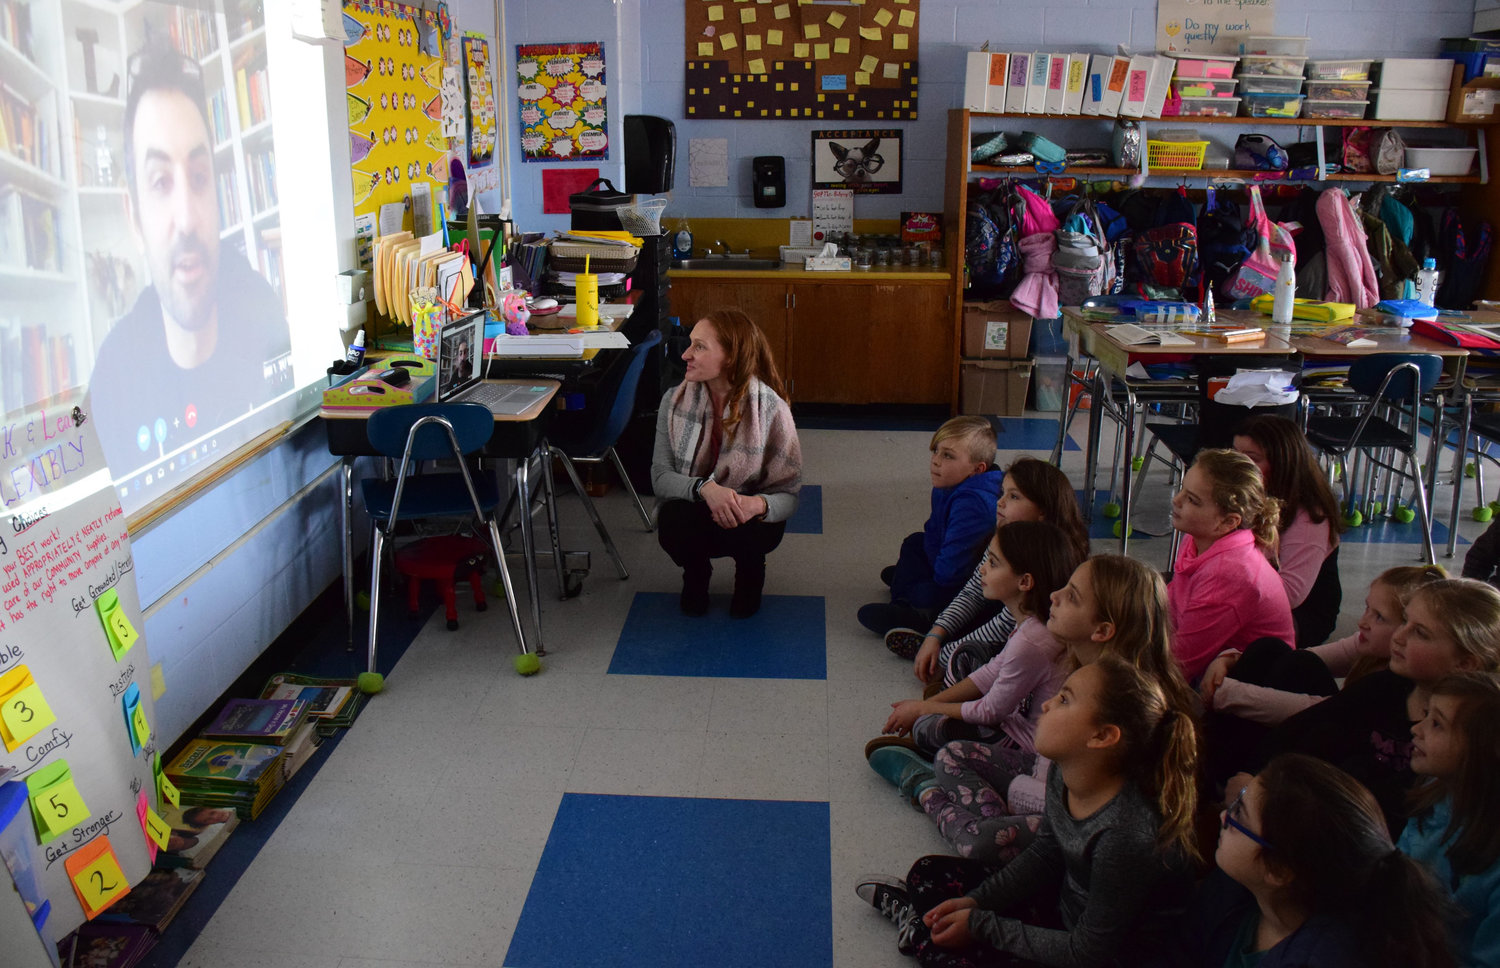 Reading specialist Danielle DiStefano facilitated a Skype session at Seaford Harbor Elementary School with children's author Jarrett Lerner in honor of World Read Aloud Day last month.